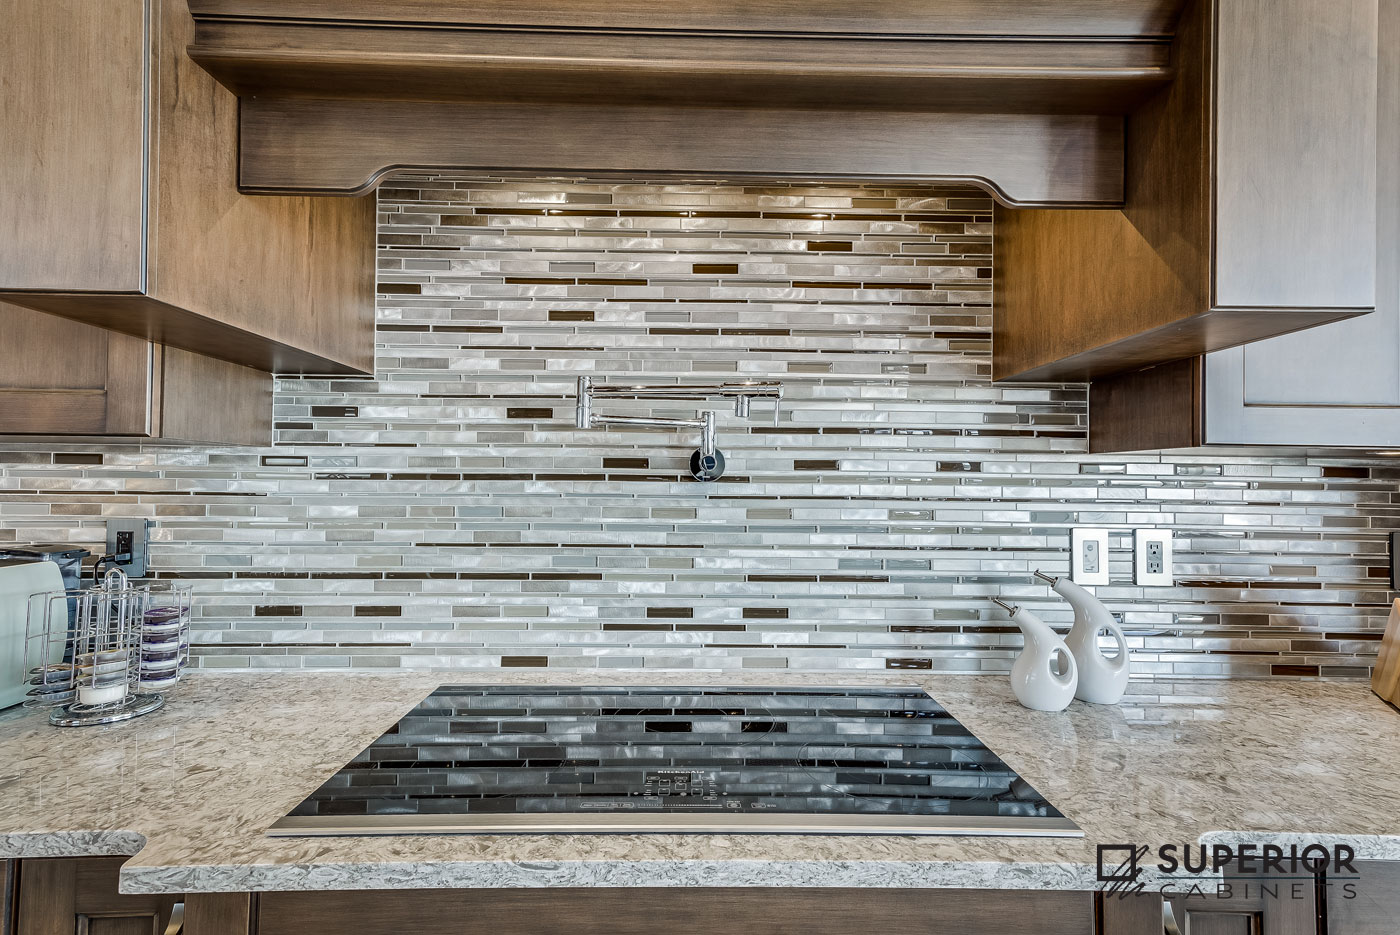 Kitchen cabinet trends 2017 - There Is Also An Increased Demand For Hidden Appliances Please See Appliance Trends Below And Cabinet Range Hoods Are The Perfect Solution